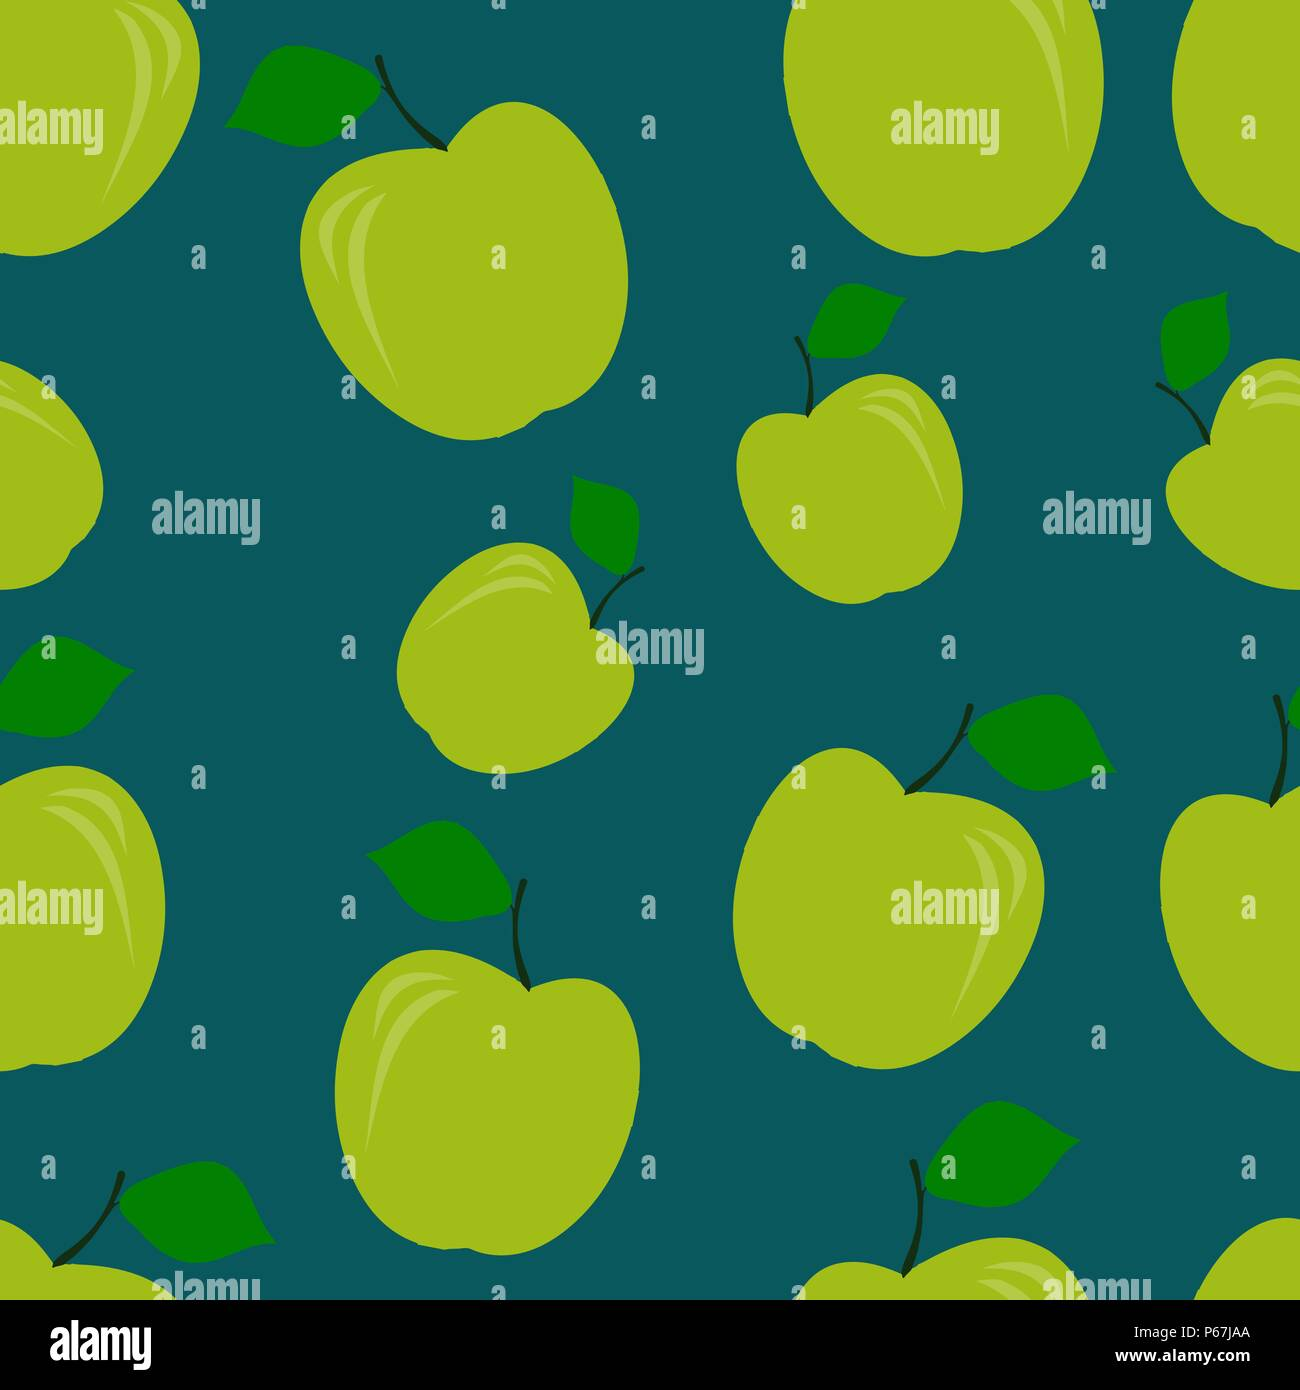 green apple pattern seamless vector illustration food wallpapersgreen apple pattern seamless vector illustration food wallpapers from fruit pantone color